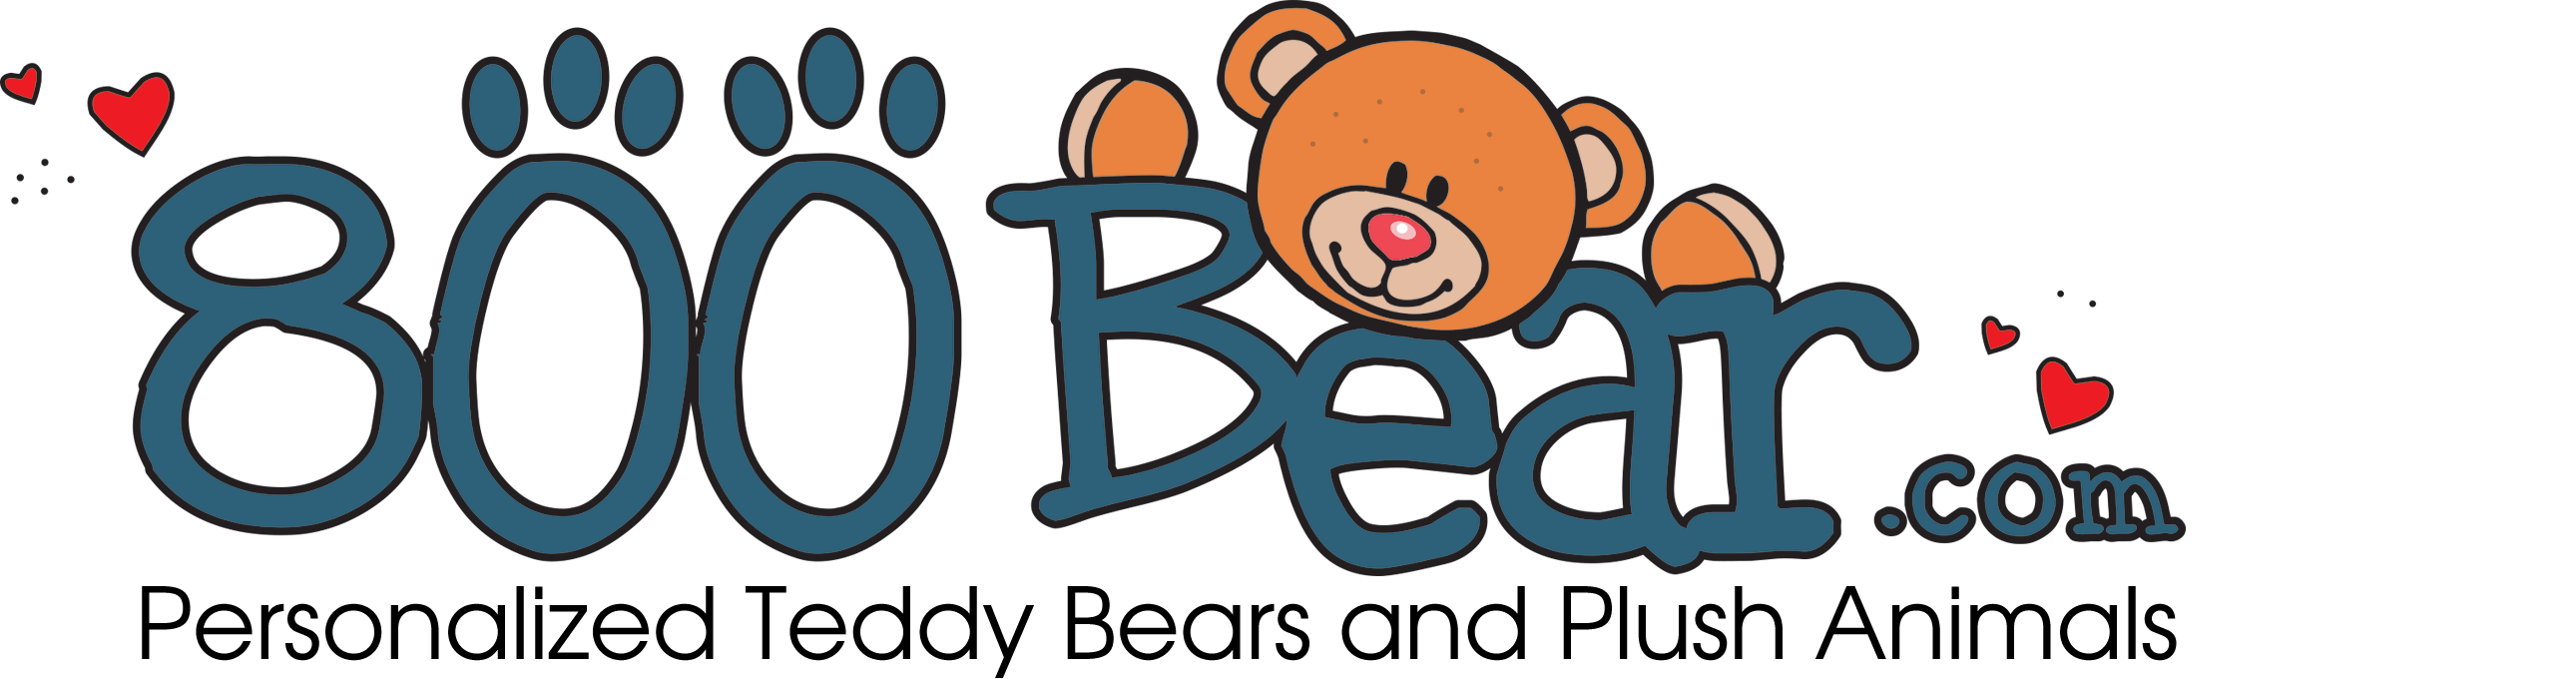 Personalized Teddy Bears and Plush Animals